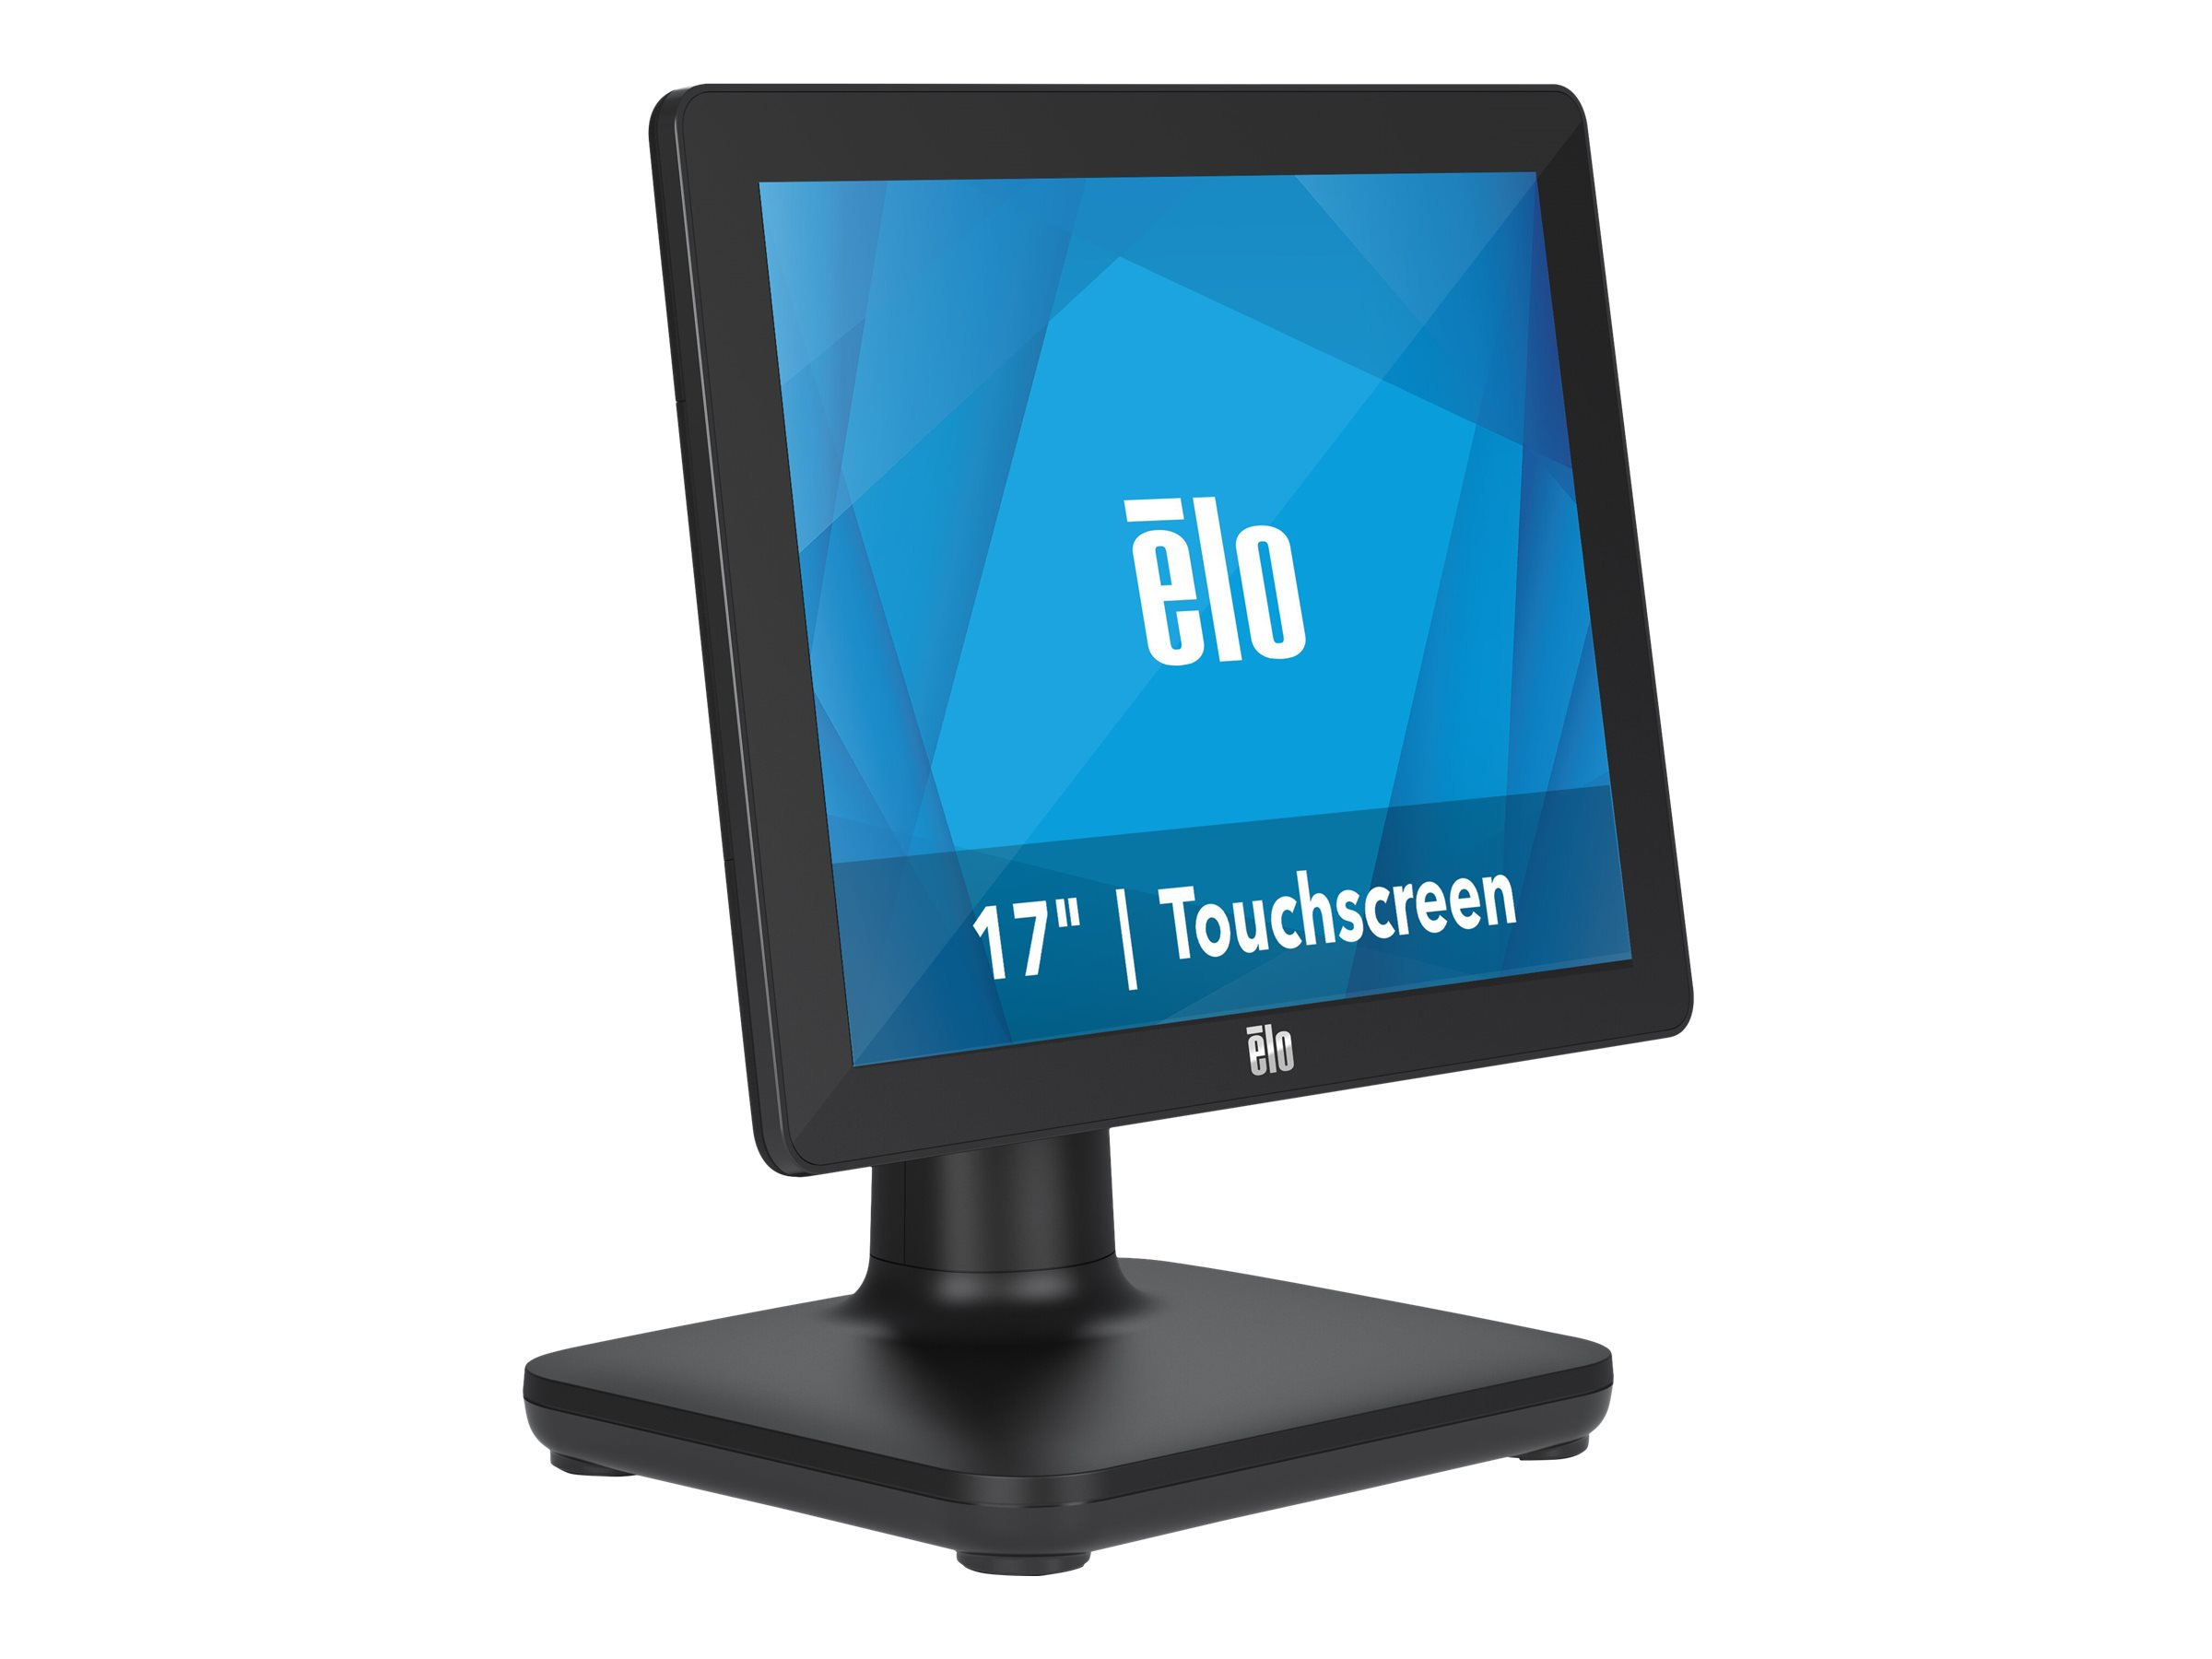 EloPOS System - with I/O Hub Stand - all-in-one - Celeron J4105 1.5 GHz - 4 GB - SSD 128 GB - LED 17